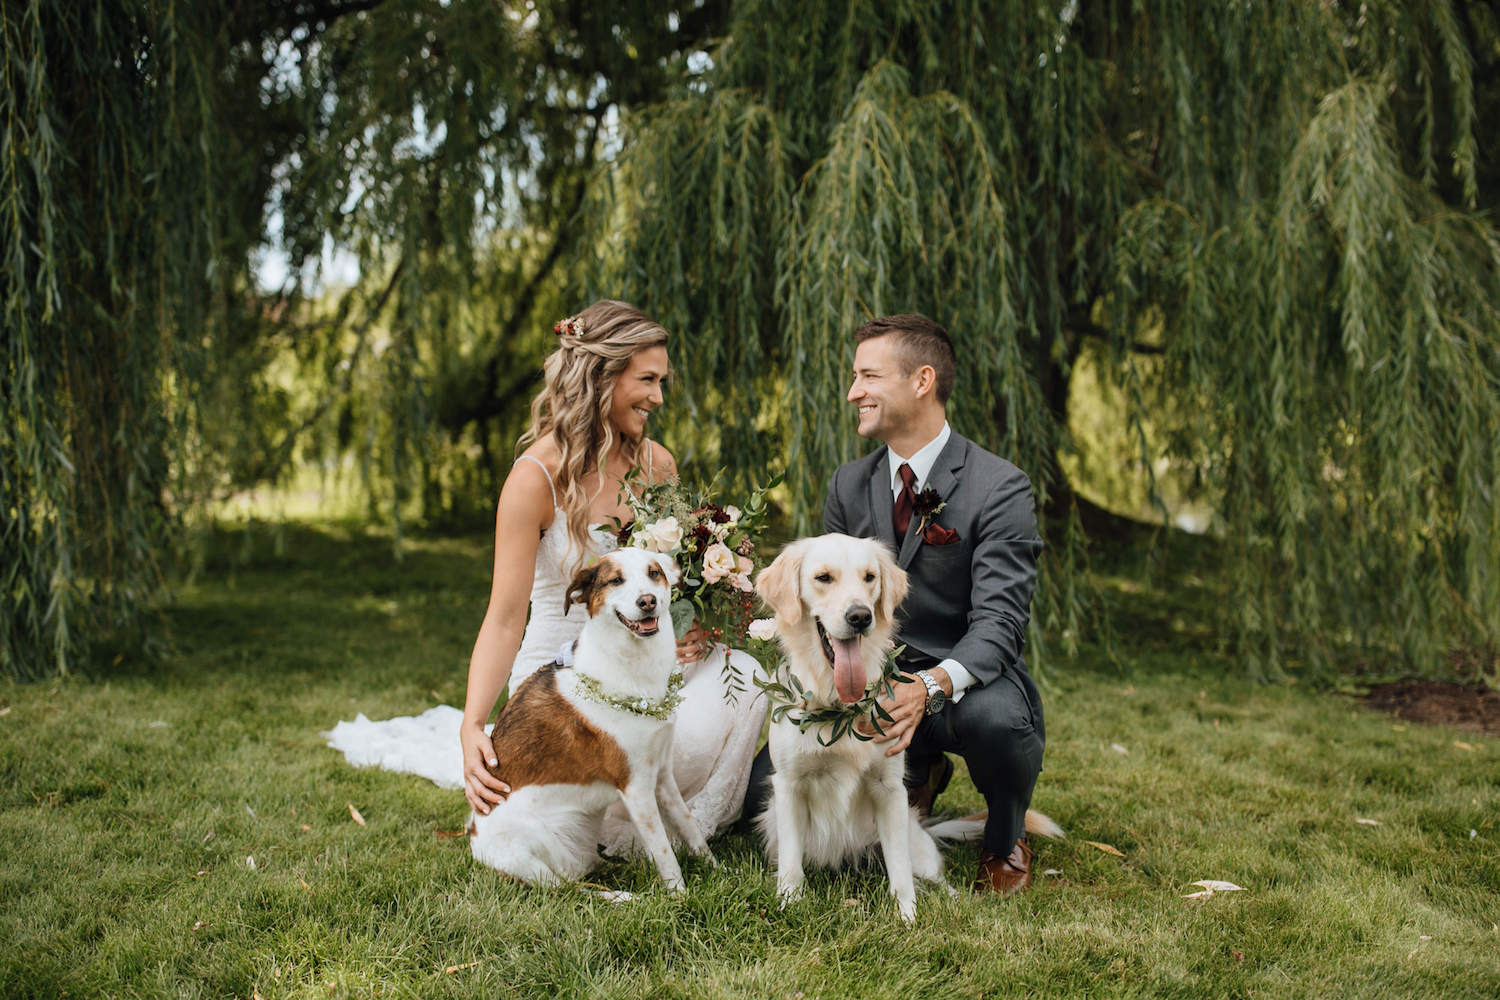 Bride and Groom smiling at each other with dogs